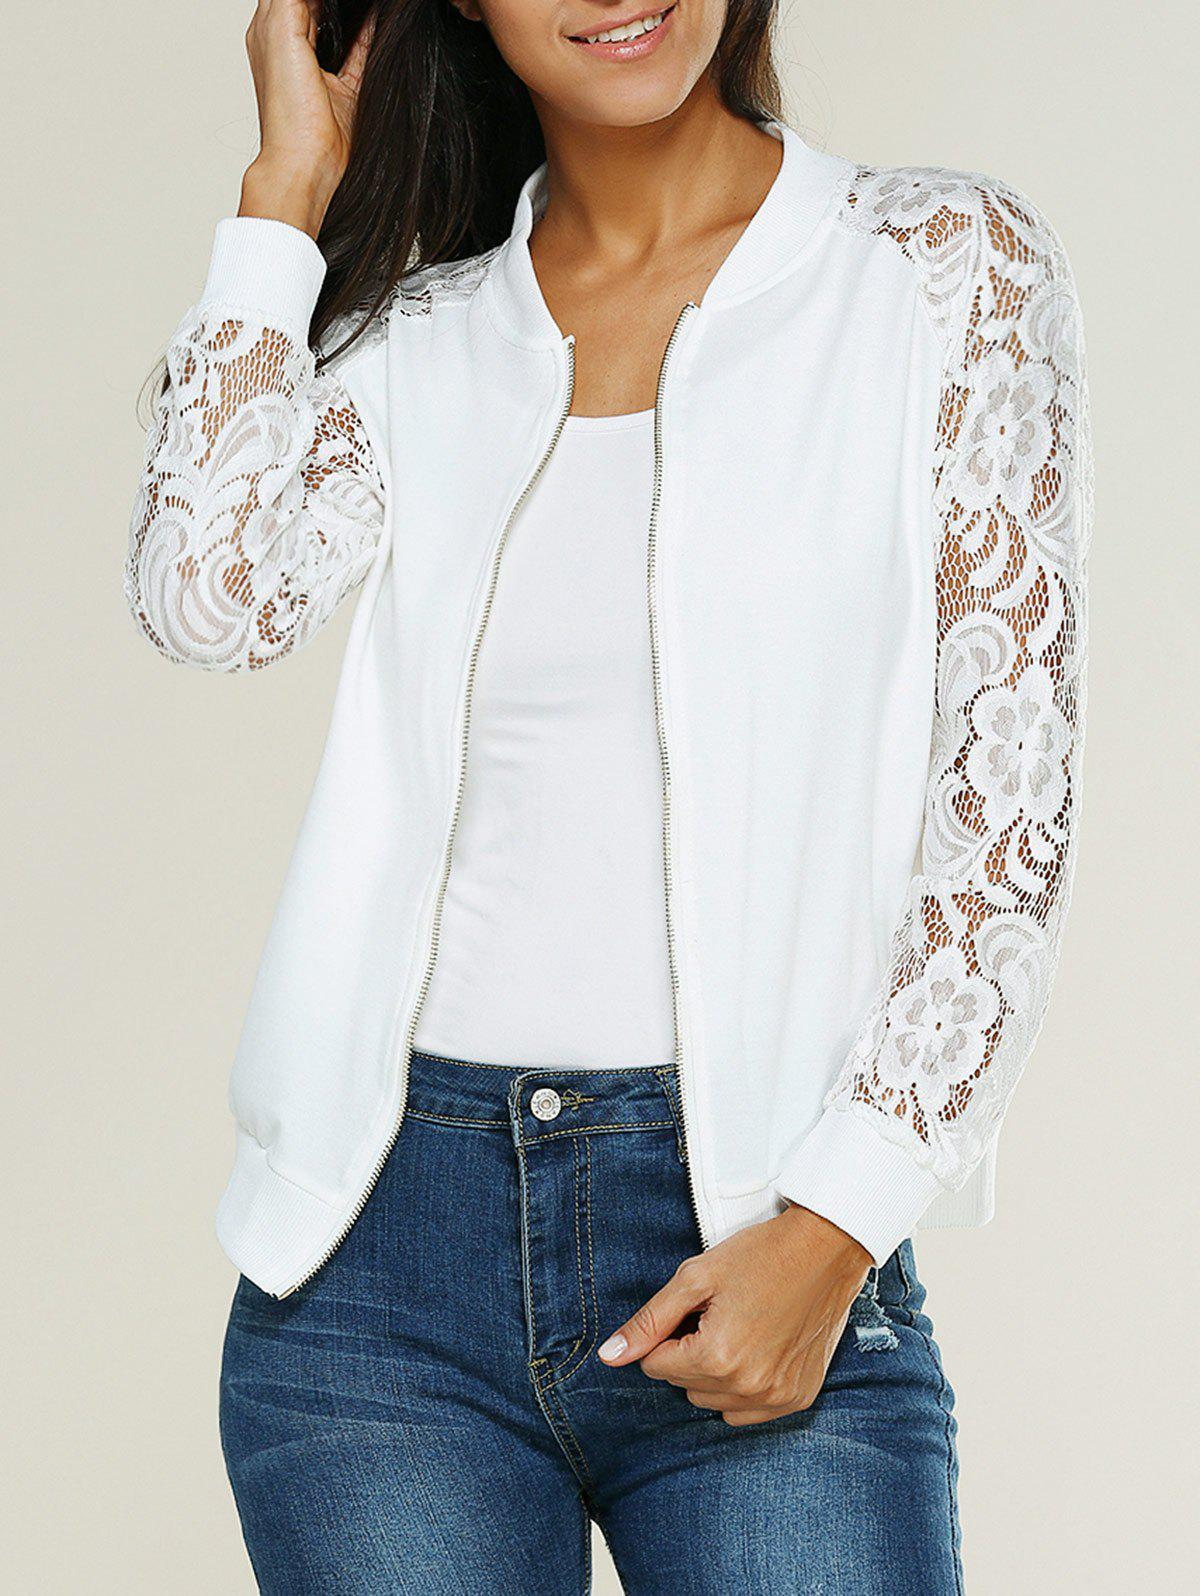 Lace Insert Bomber Zip Up JacketWOMEN<br><br>Size: L; Color: WHITE; Clothes Type: Jackets; Material: Cotton Blends; Type: Slim; Shirt Length: Regular; Sleeve Length: Full; Collar: Stand-Up Collar; Closure Type: Zipper; Pattern Type: Floral; Embellishment: Lace; Style: Casual; Season: Fall,Summer; Weight: 0.2710kg; Package Contents: 1 X Jacket;